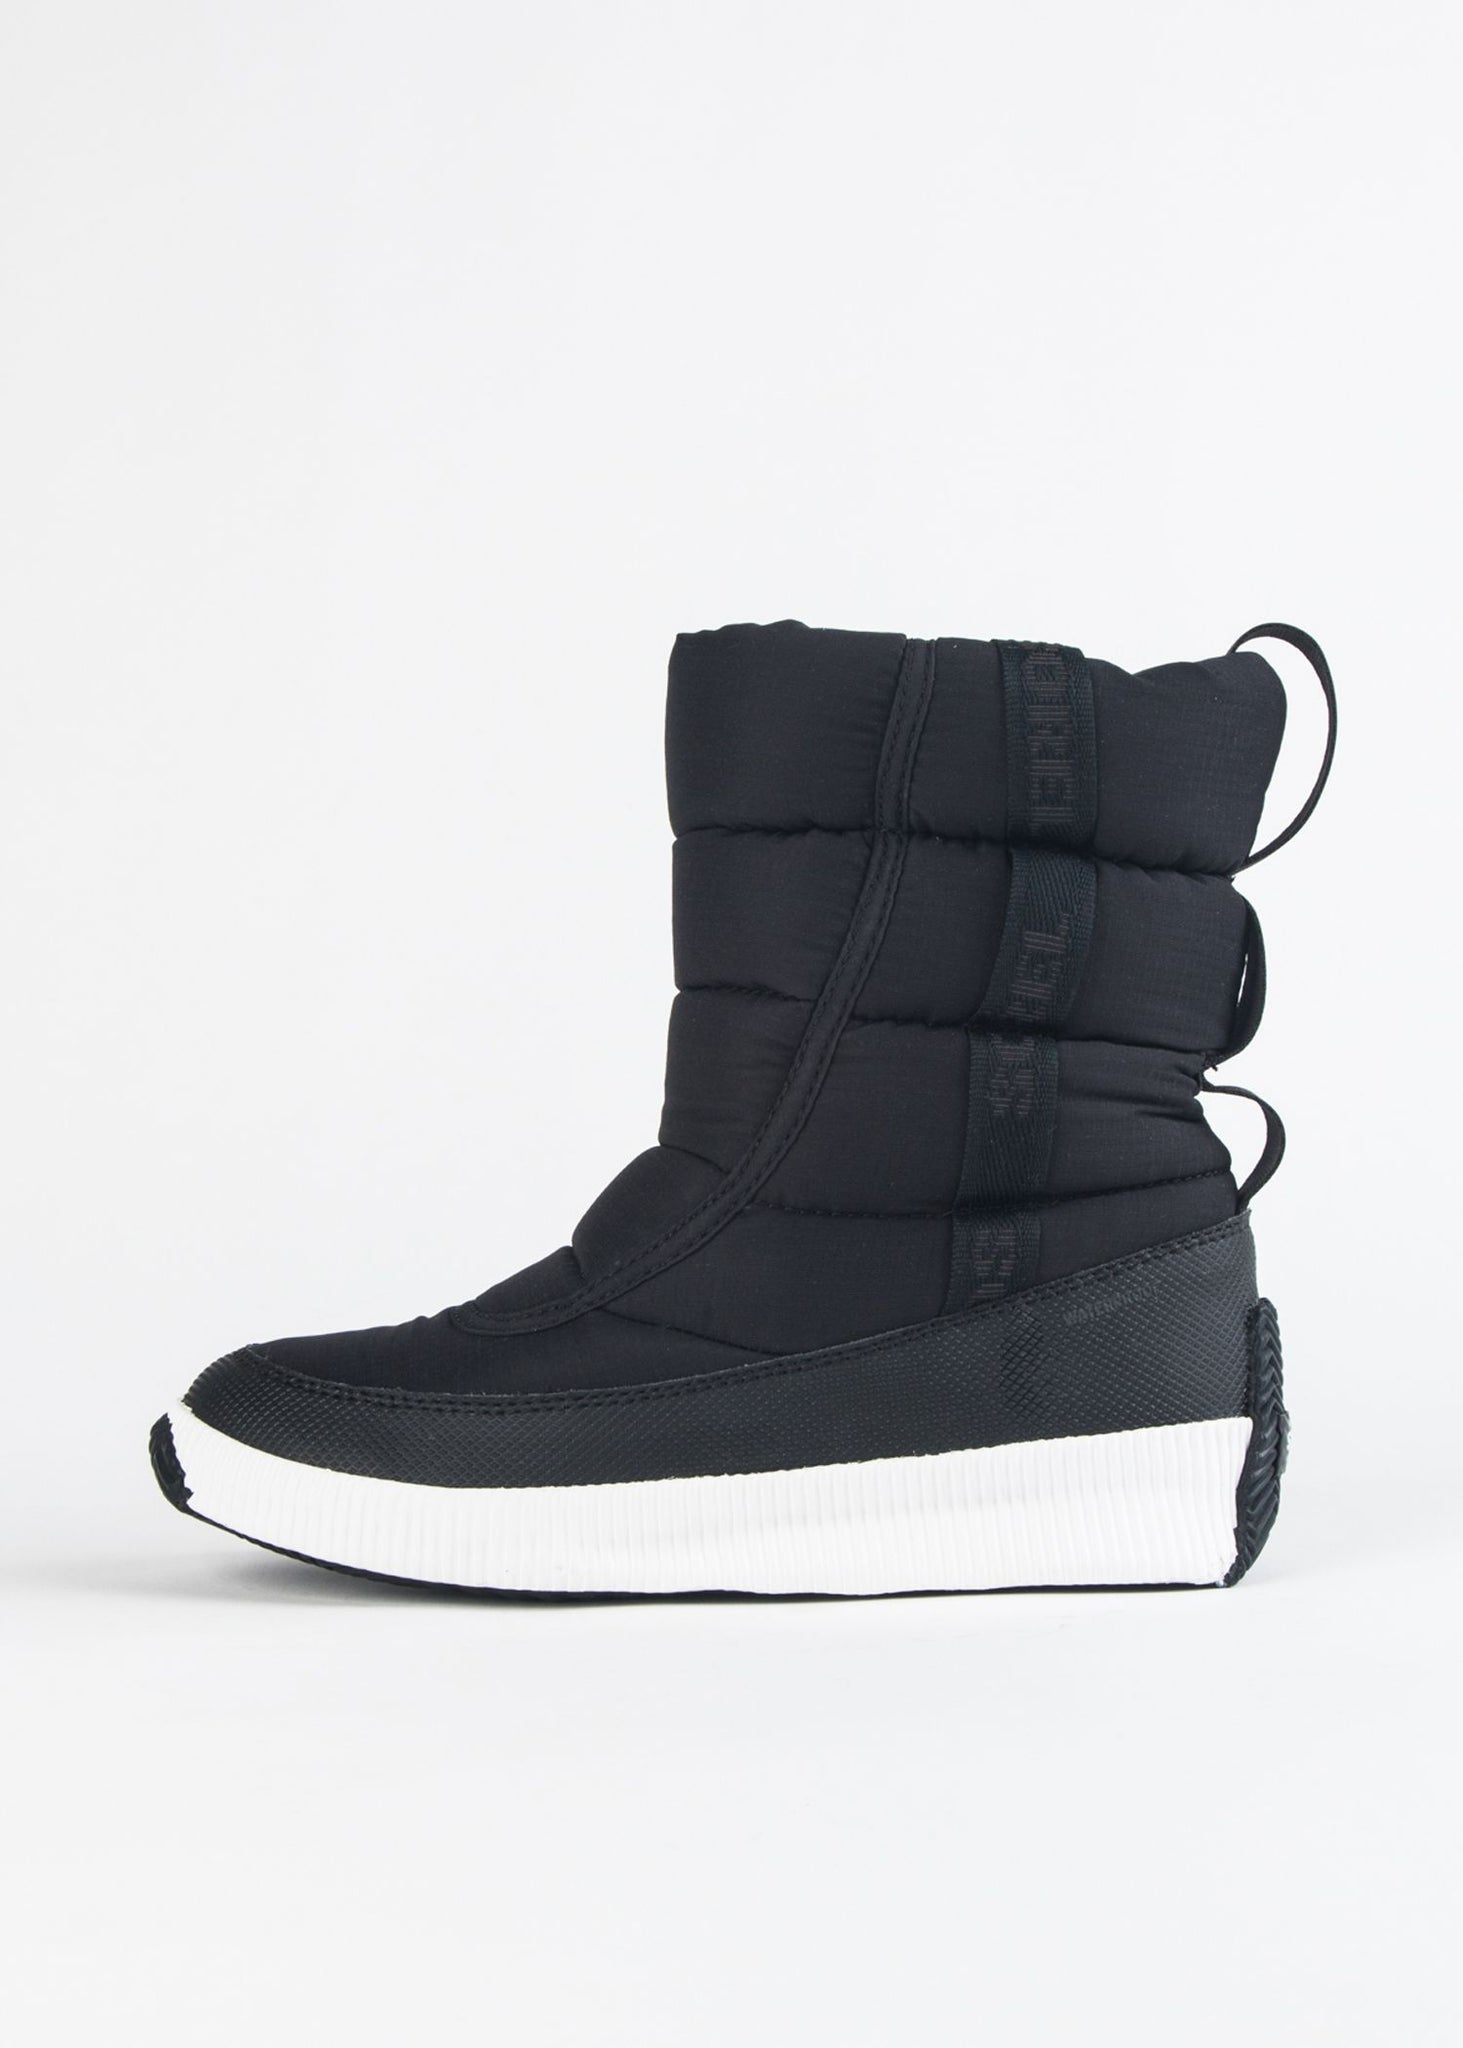 OUTNABOUT QUILTED WATERPROOF BOOT